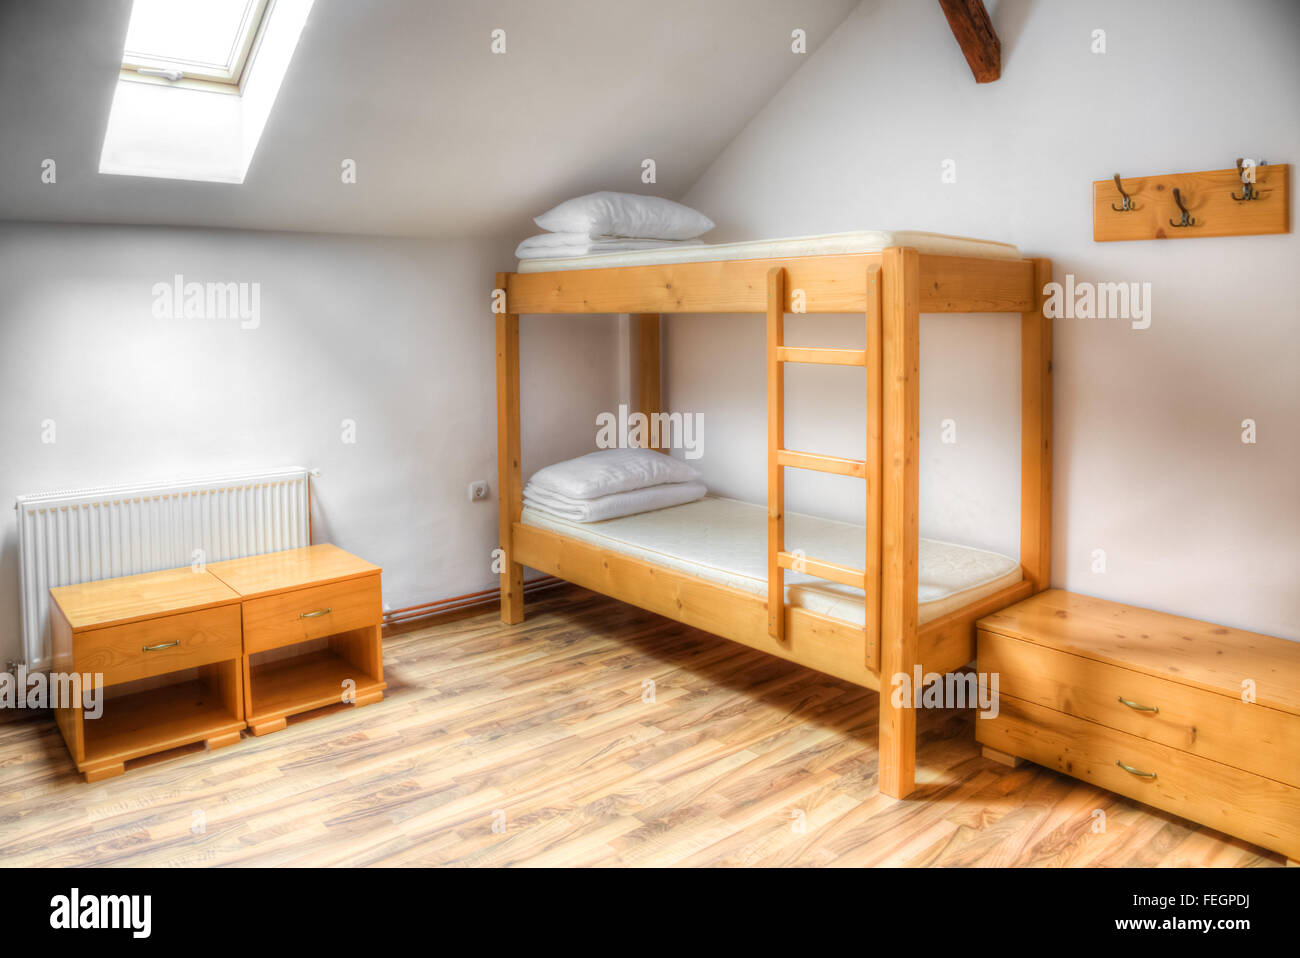 Clean hostel room with wooden bunk beds. - Stock Image